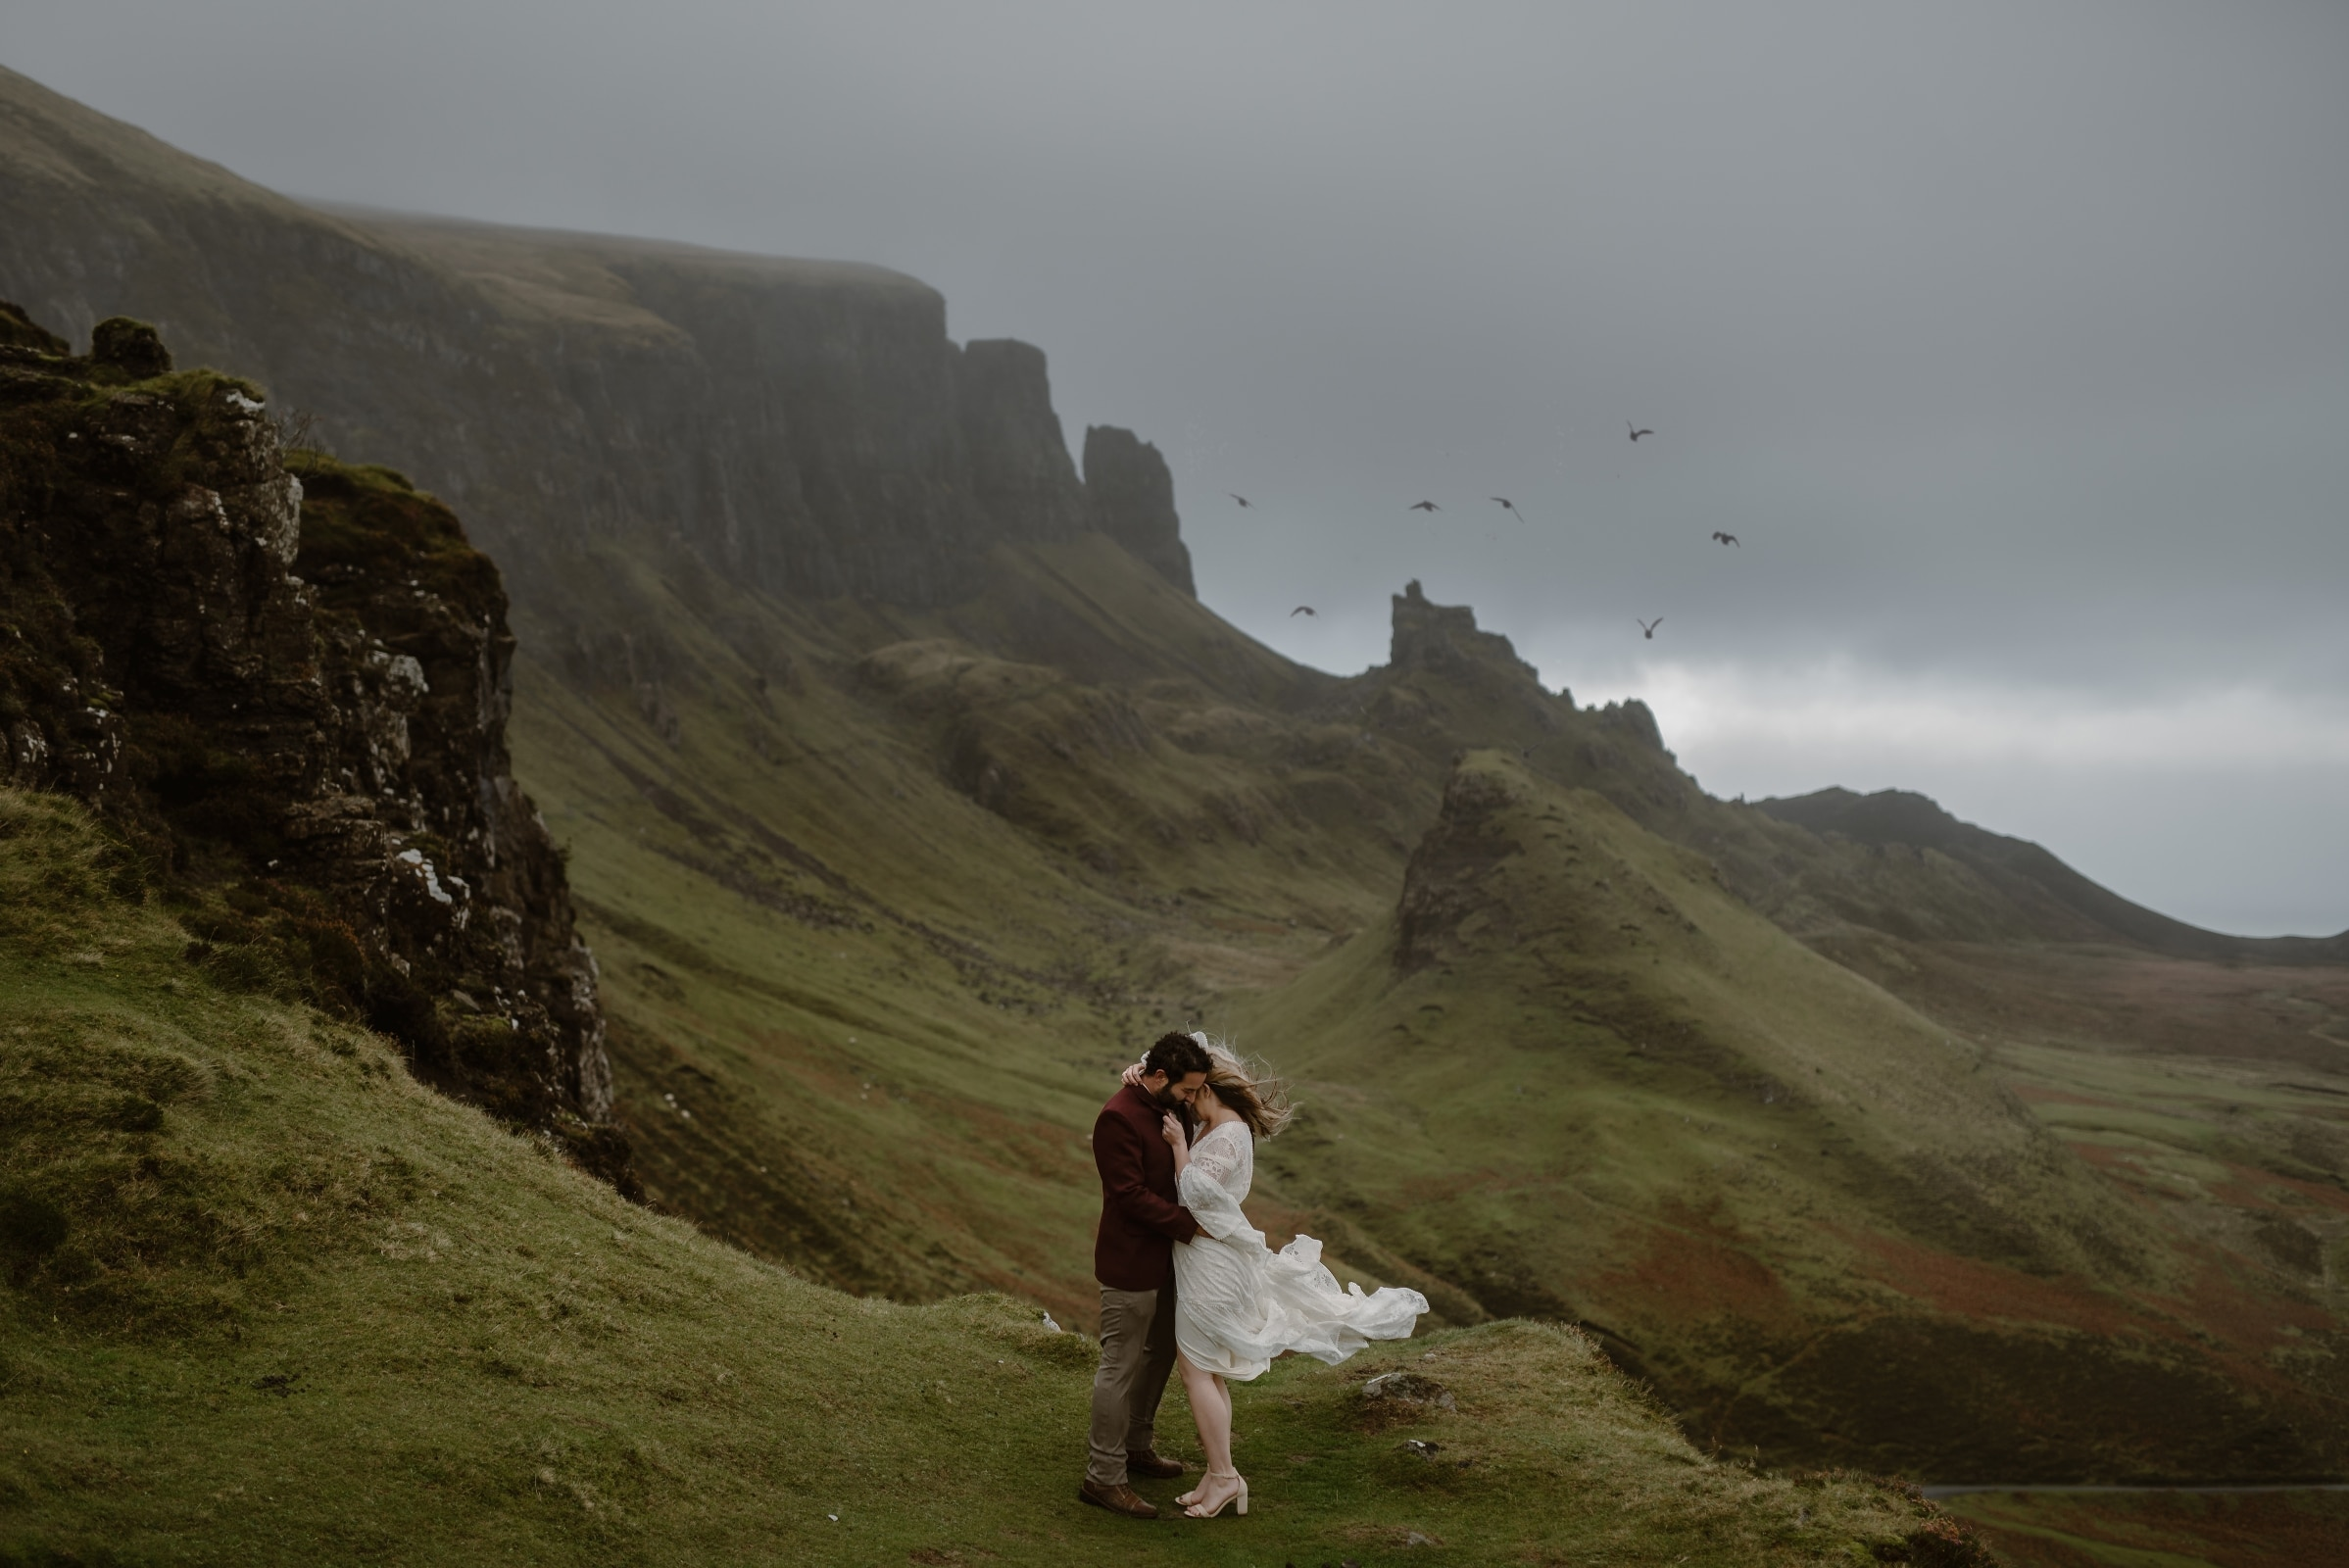 An eloping bride and groom are embracing each other, keeping warm from the intense Scottish winds. Behind them are the jagged mountains of the Isle of Skye. Birds are flying in the distance over the rocks. This is one of the best elopement locations.